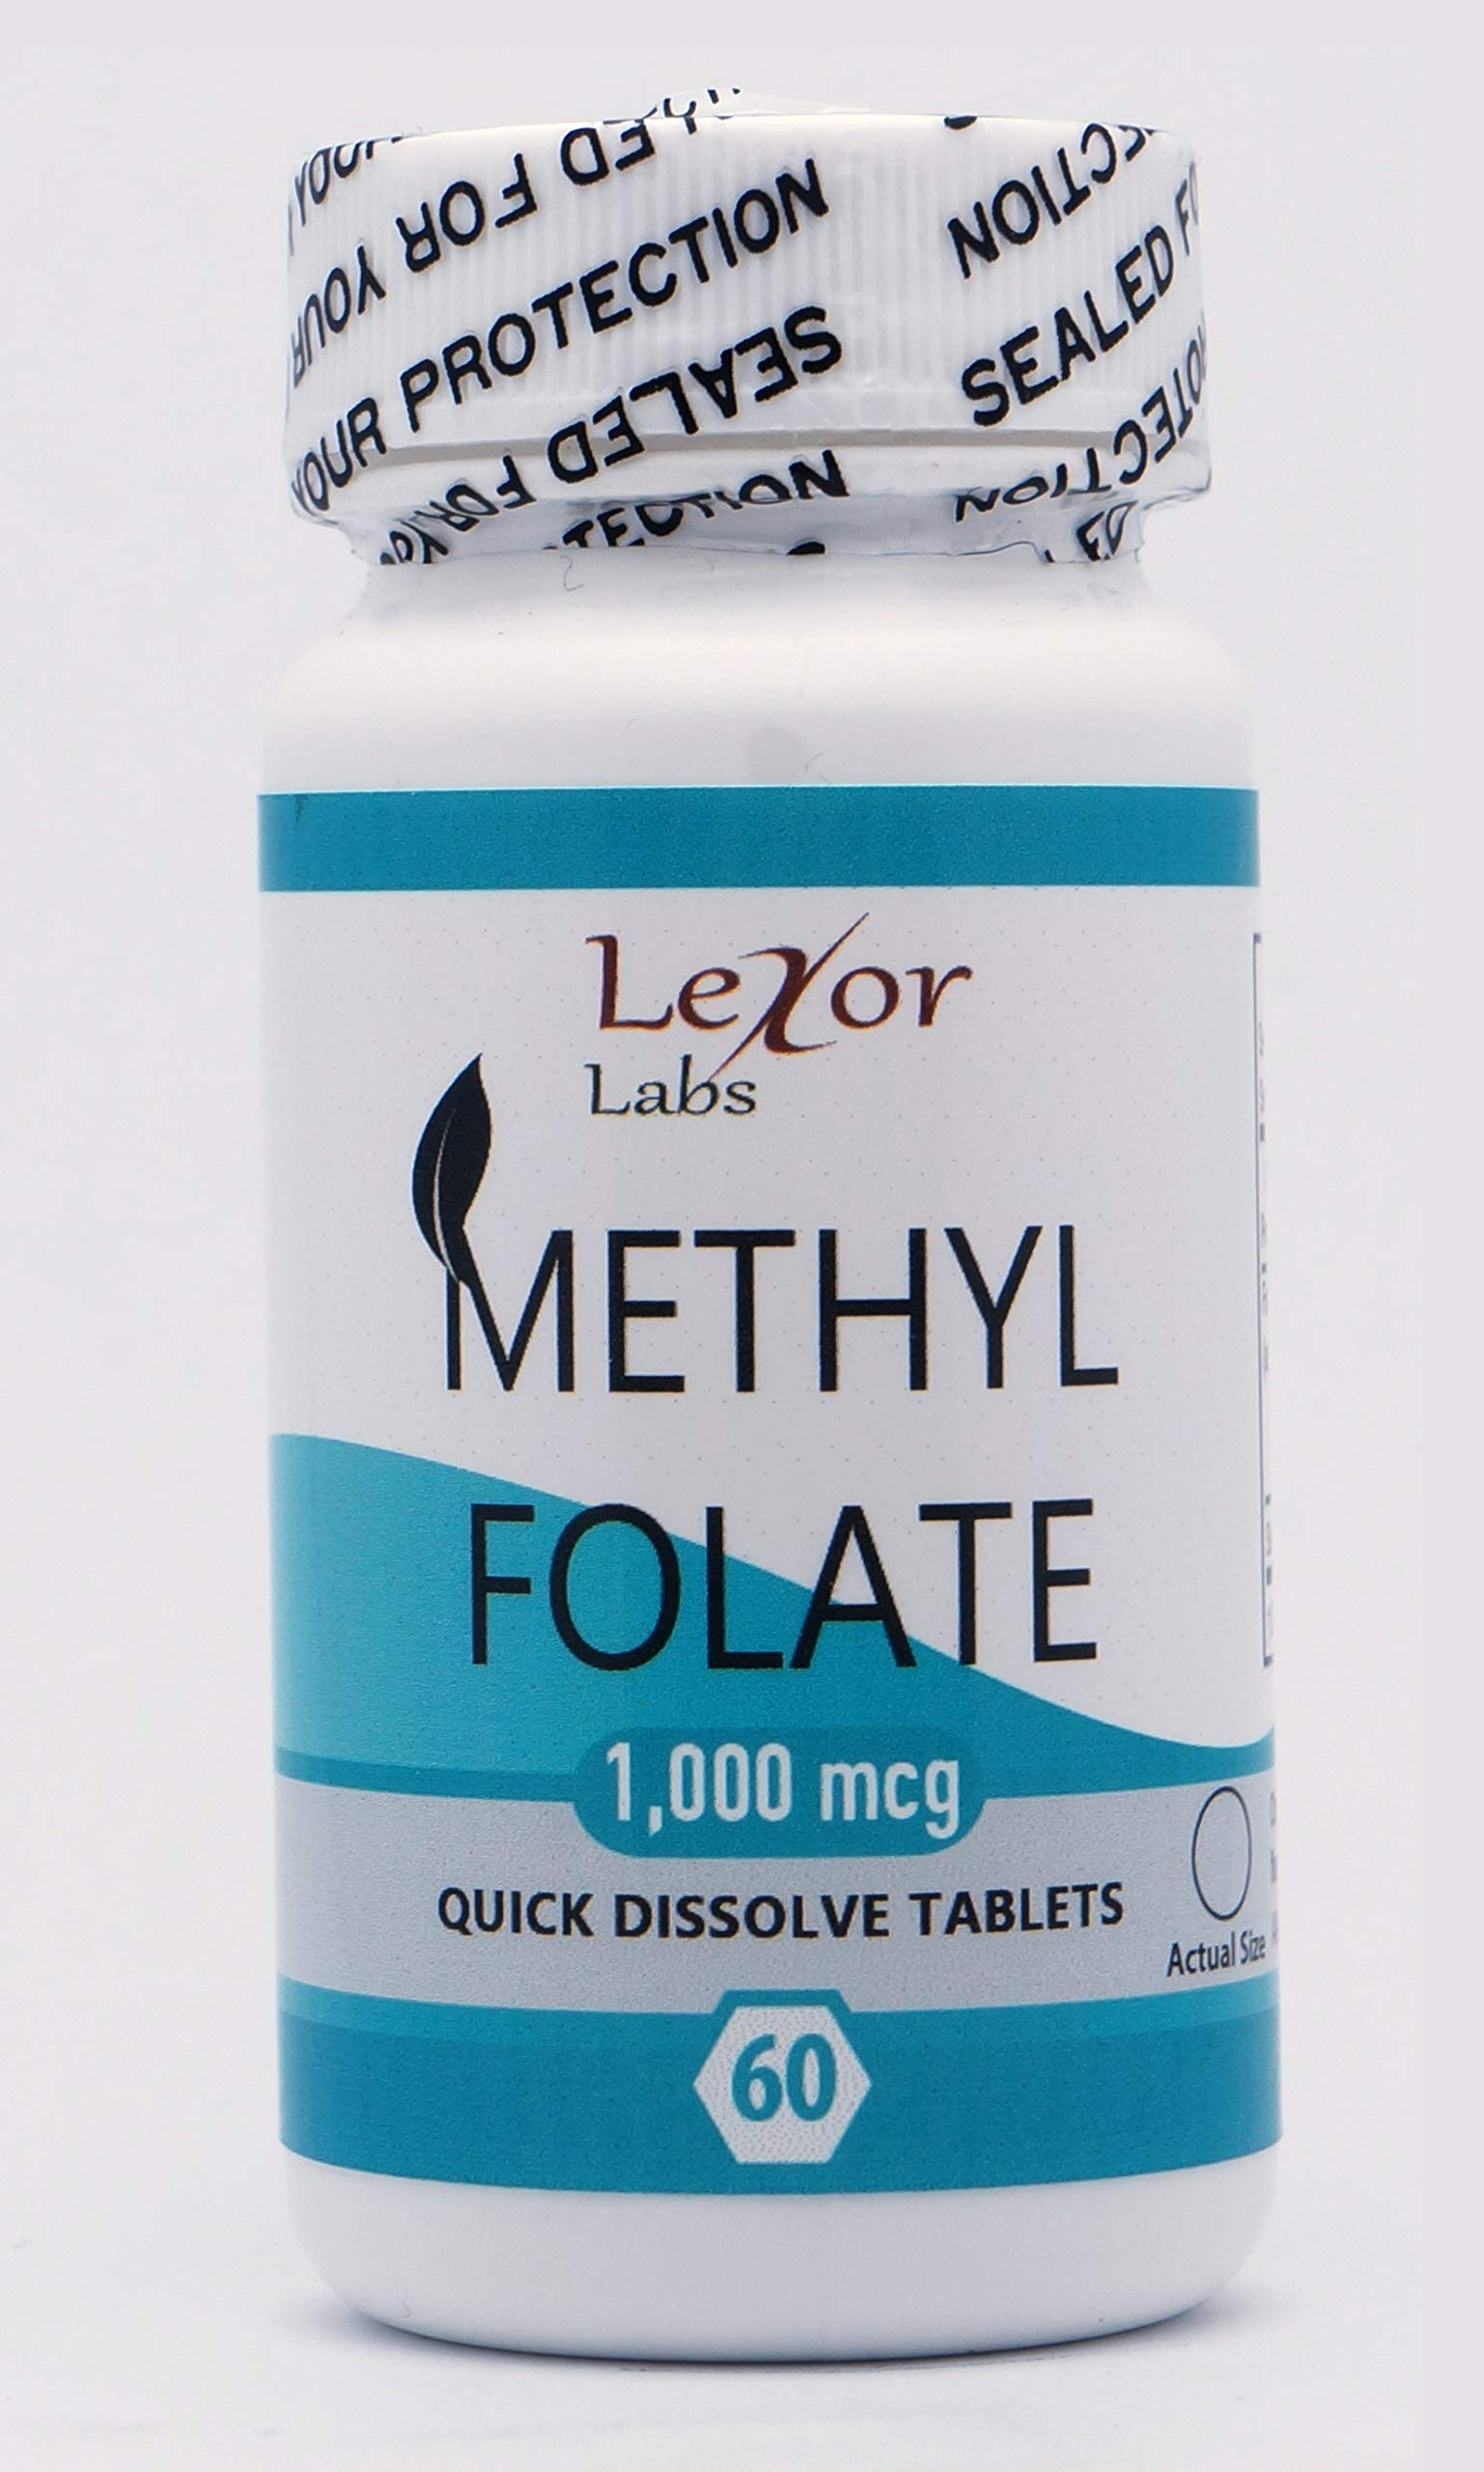 Lexor Labs Methyl Folate (5-MTHF) 1, 000 Mcg Quick Dissolve Tablets - Active Vitamin B9 Folate Supplement, 60Count - for Heart & Nerve Health